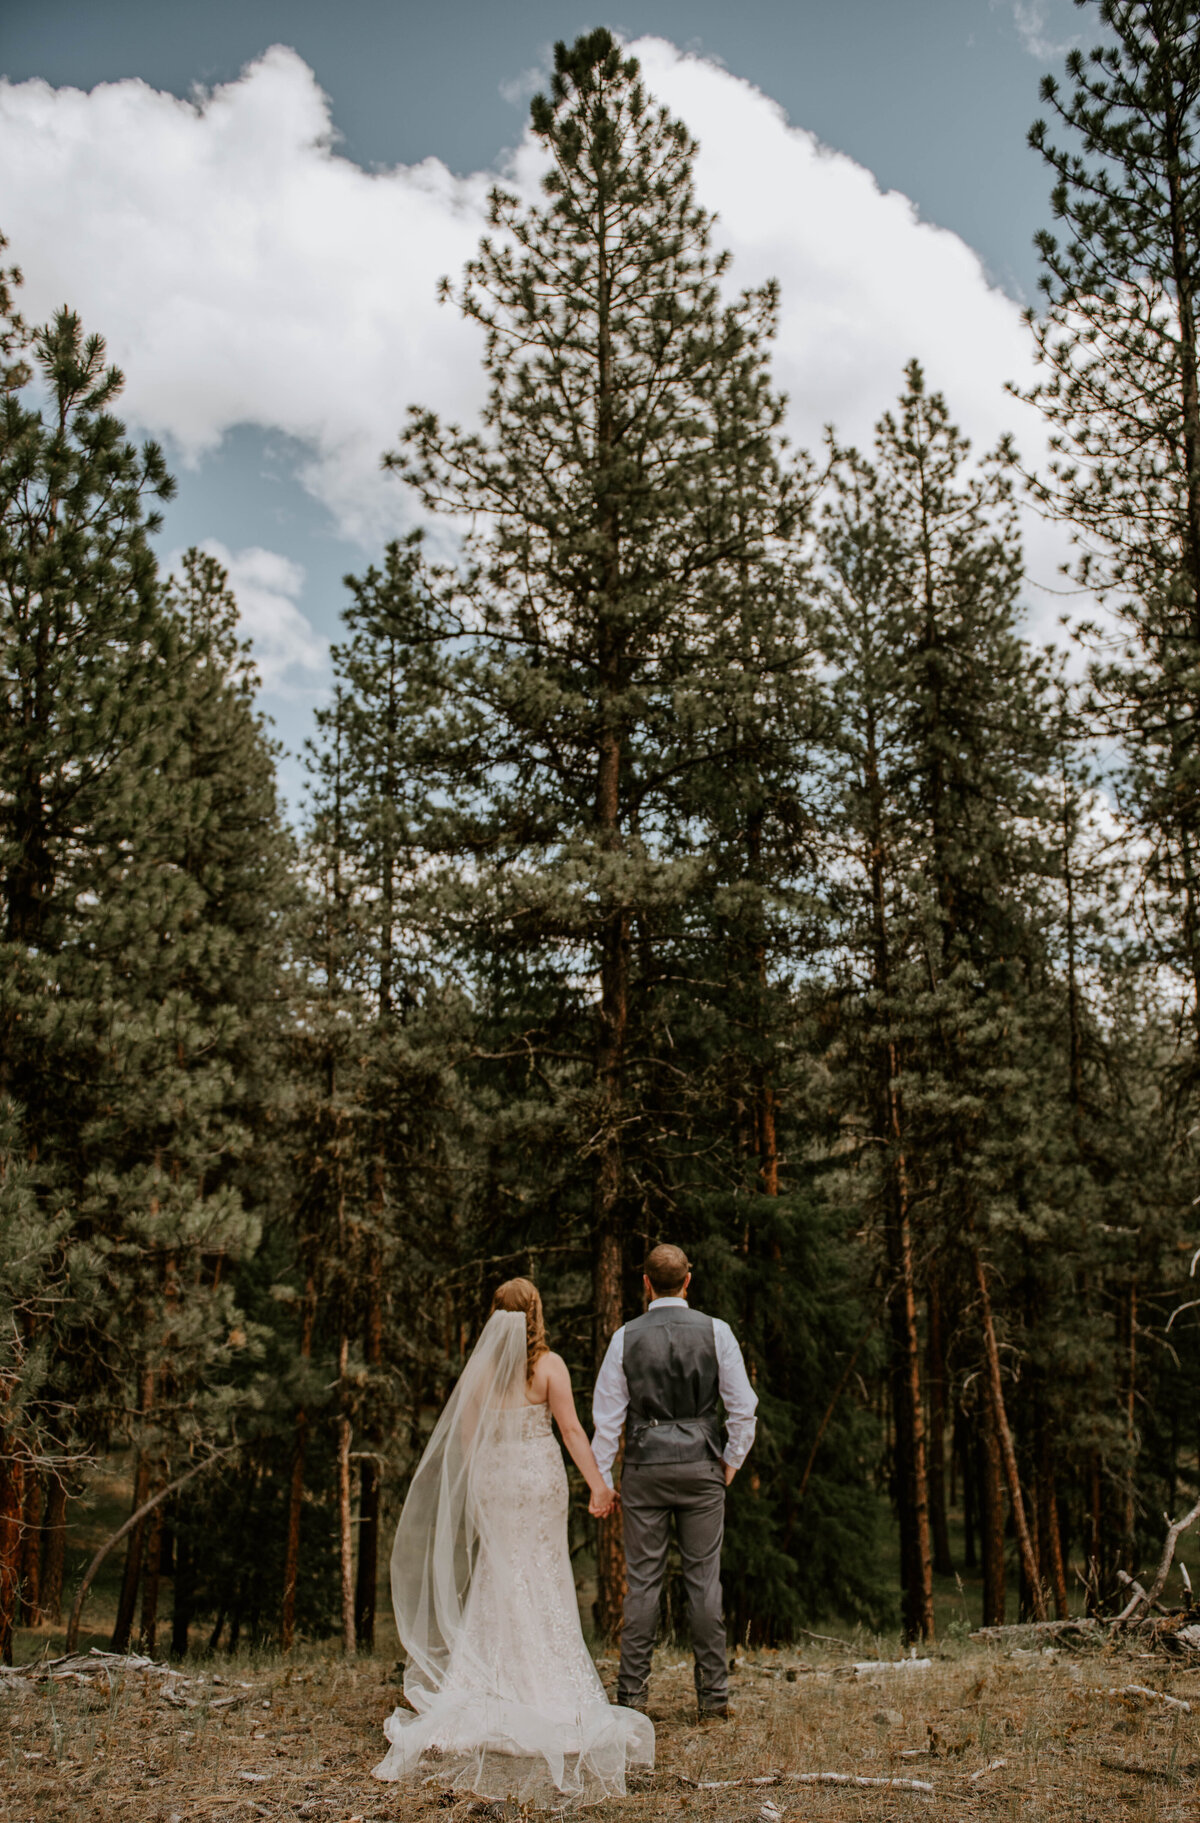 ochoco-forest-central-oregon-elopement-pnw-woods-wedding-covid-bend-photographer-inspiration1467